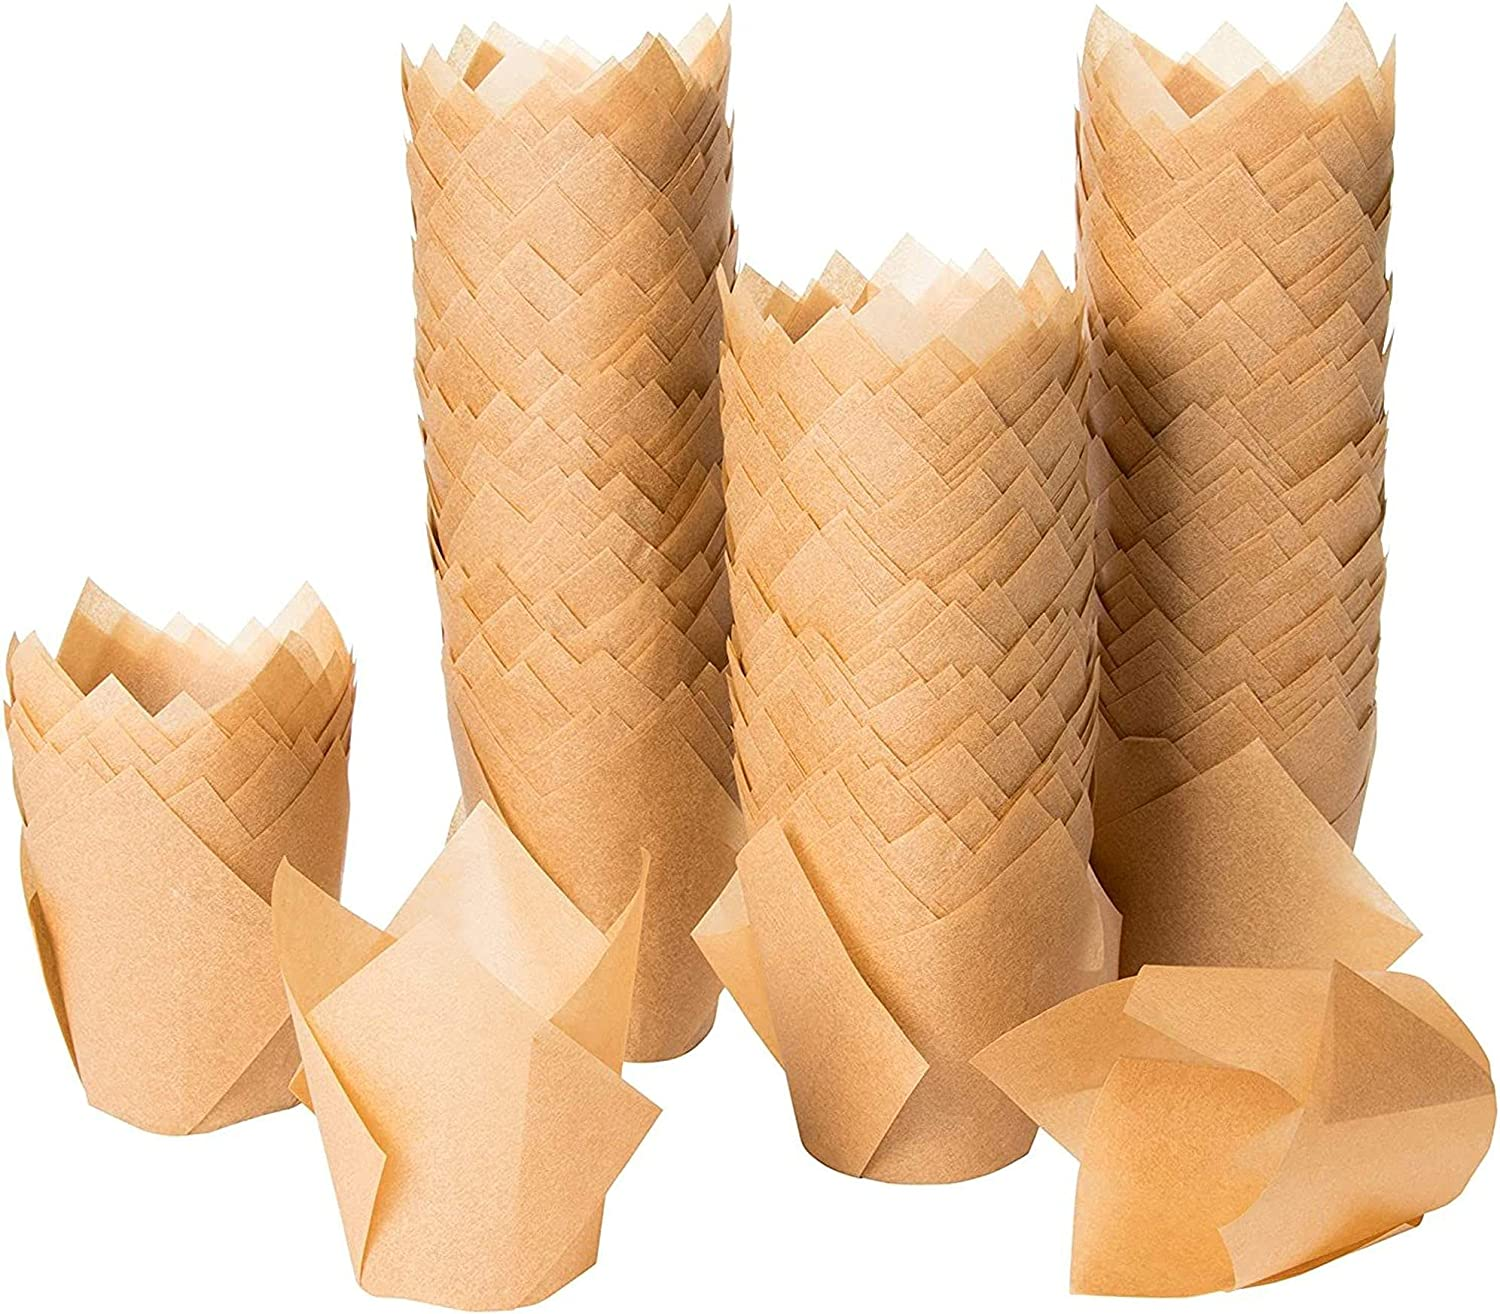 Tulip Cupcake Liners - Columbus Mall 300-Pack Baking Medium low-pricing Wrapp Muffin Cups